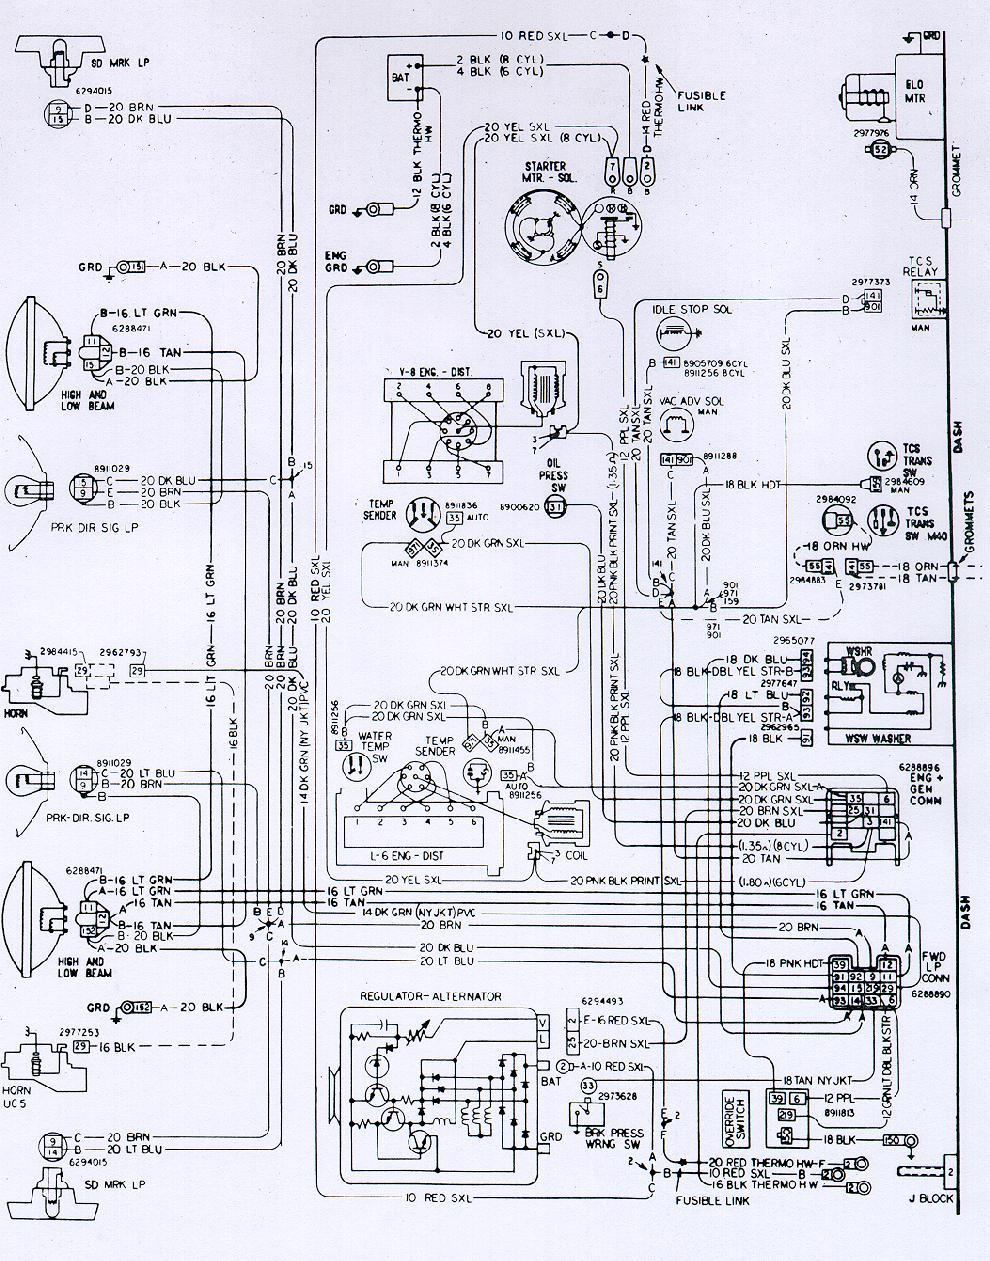 hight resolution of camaro wiring electrical information 1981 camaro wiring diagram 1981 camaro wiring diagram